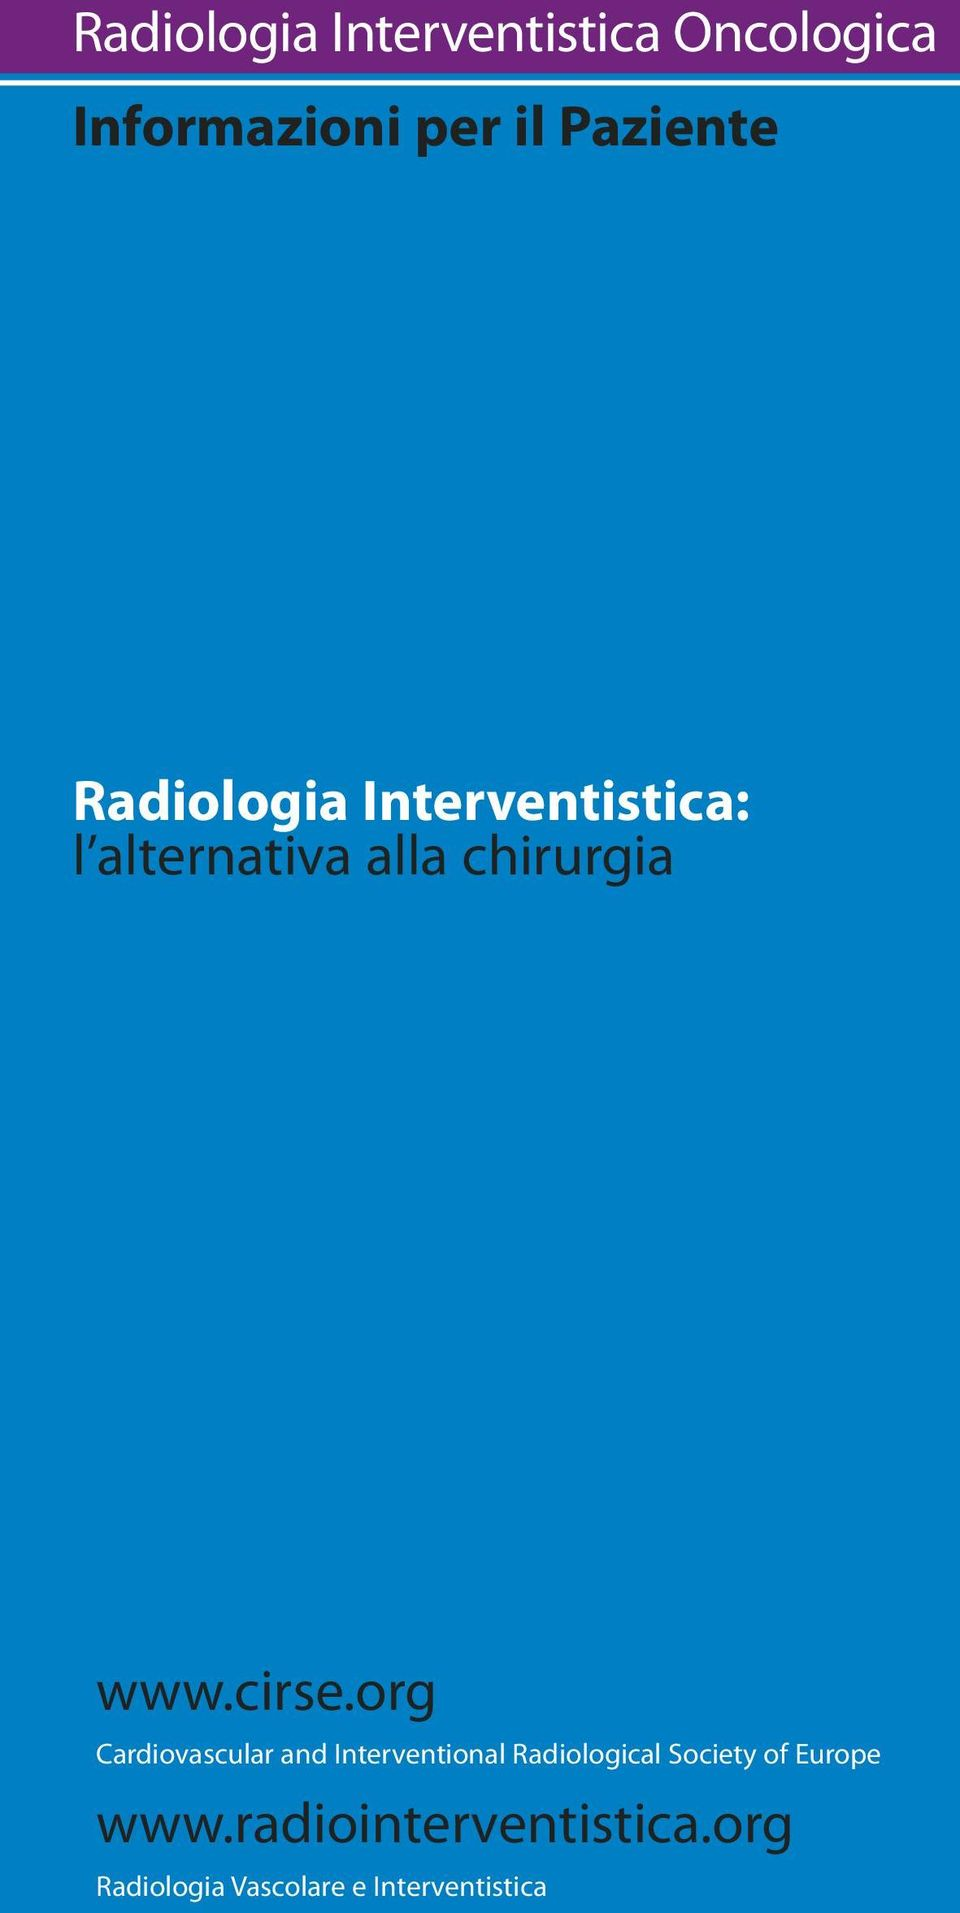 org Cardiovascular and Interventional Radiological Society of Europe www.